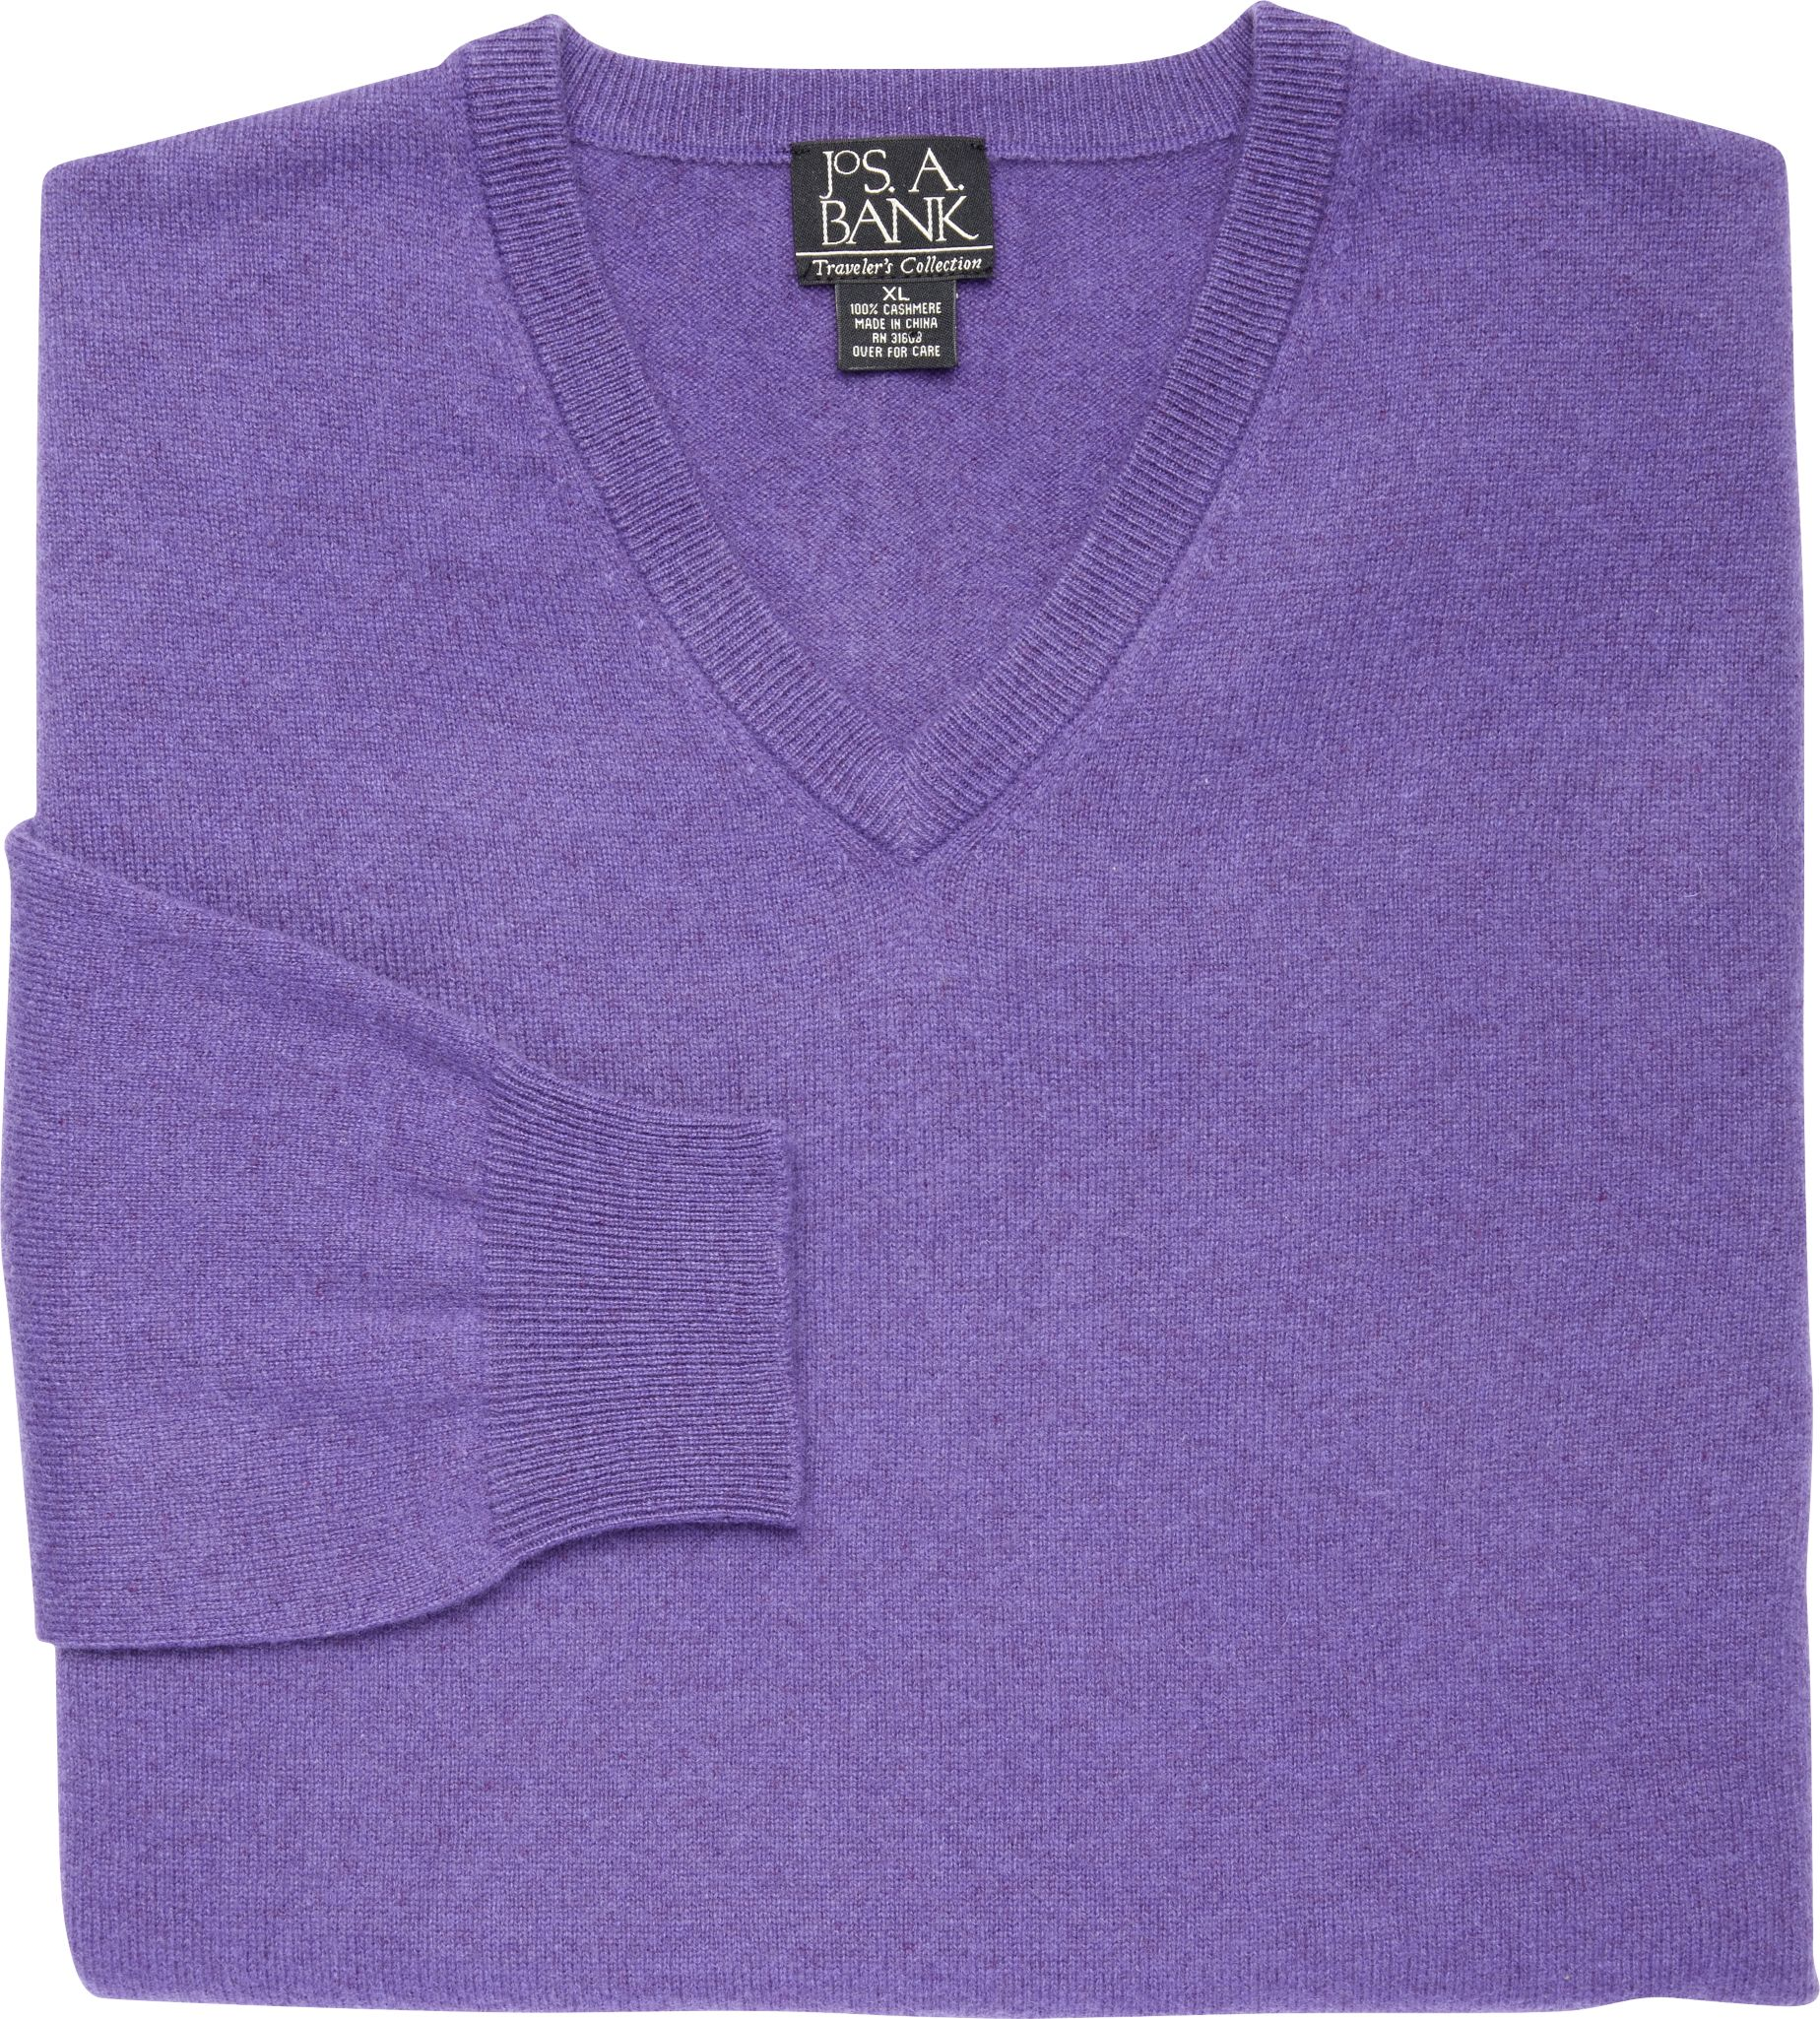 Cashmere Sweaters | Men's Sweaters | JoS. A. Bank Clothiers